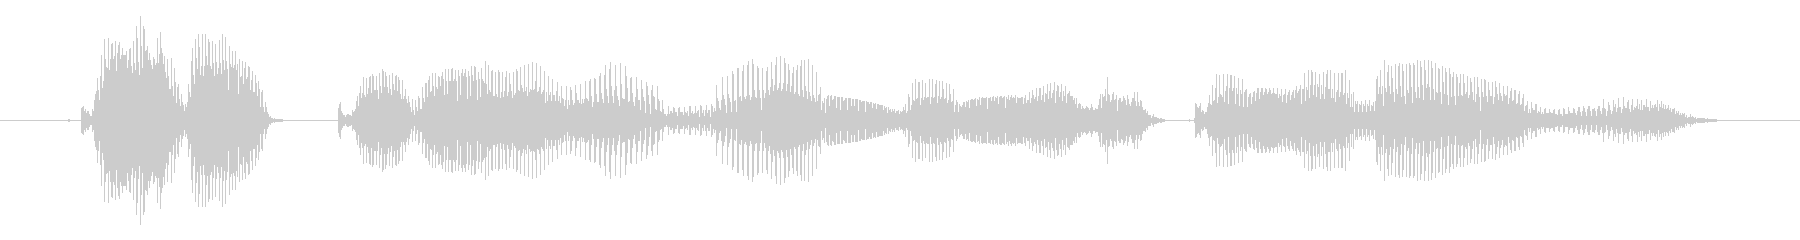 I'll have you do anything from now on (female)'s unreproduced waveform